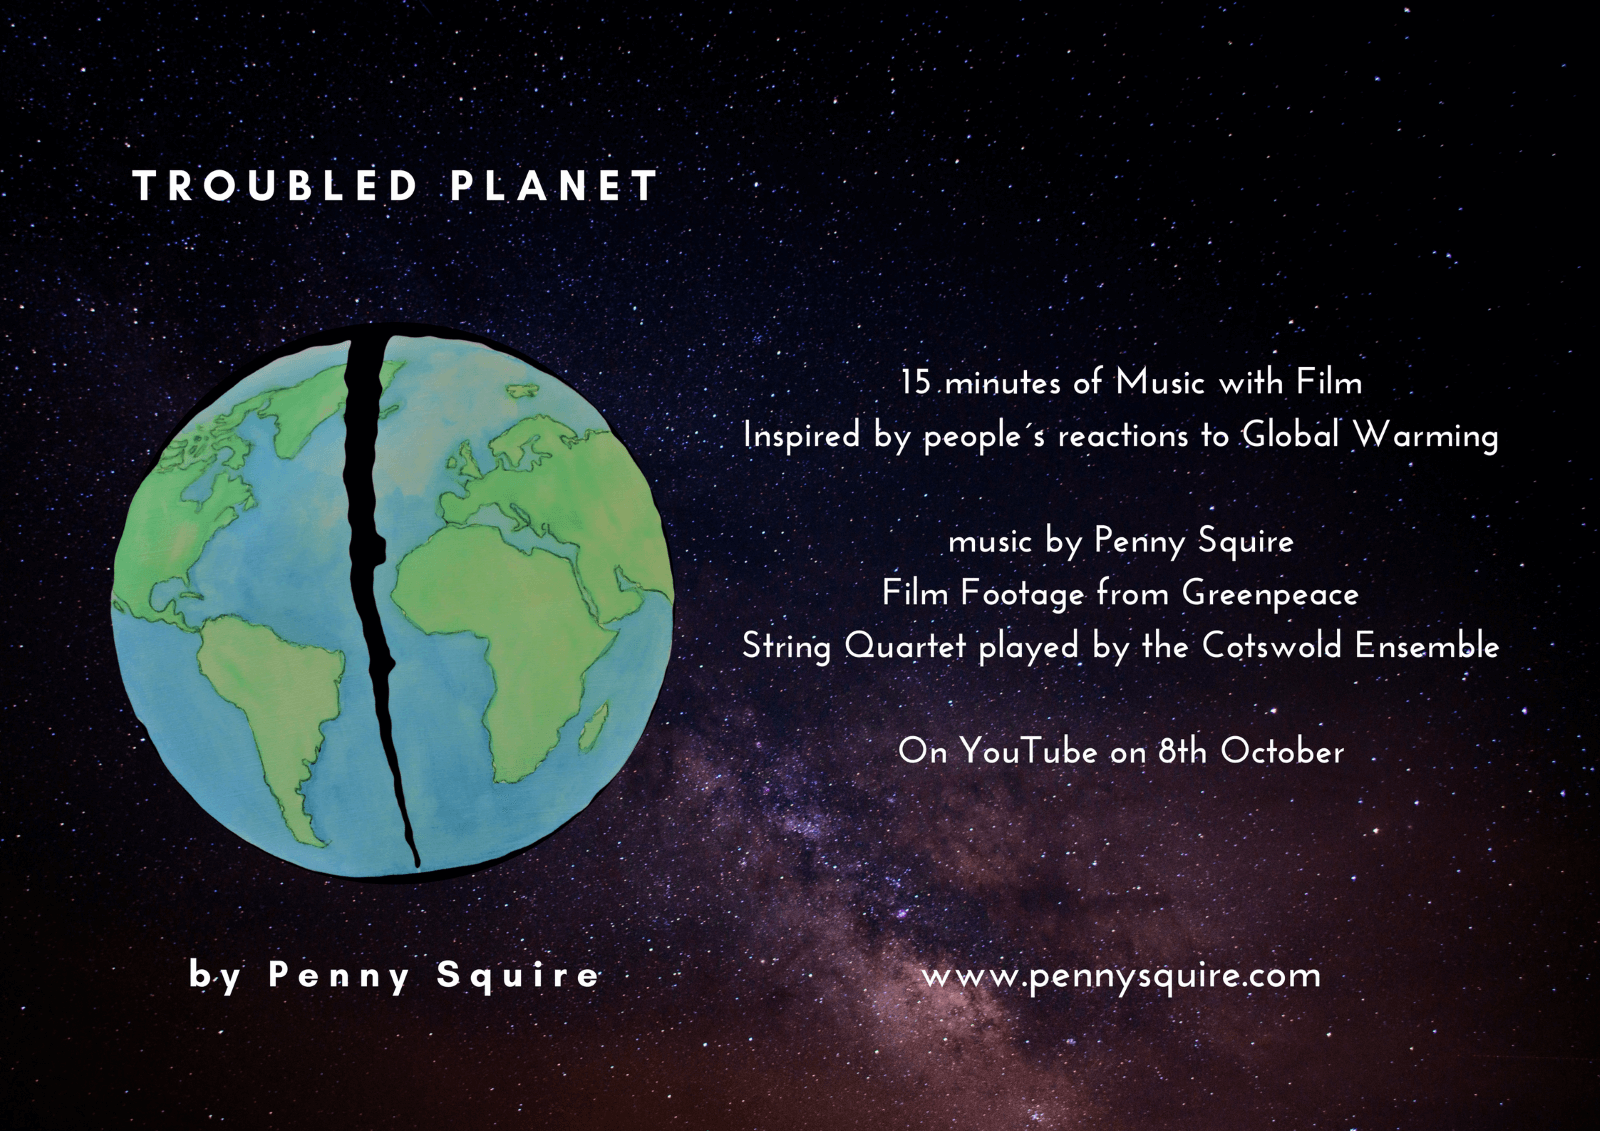 Troubled Planet Promotion